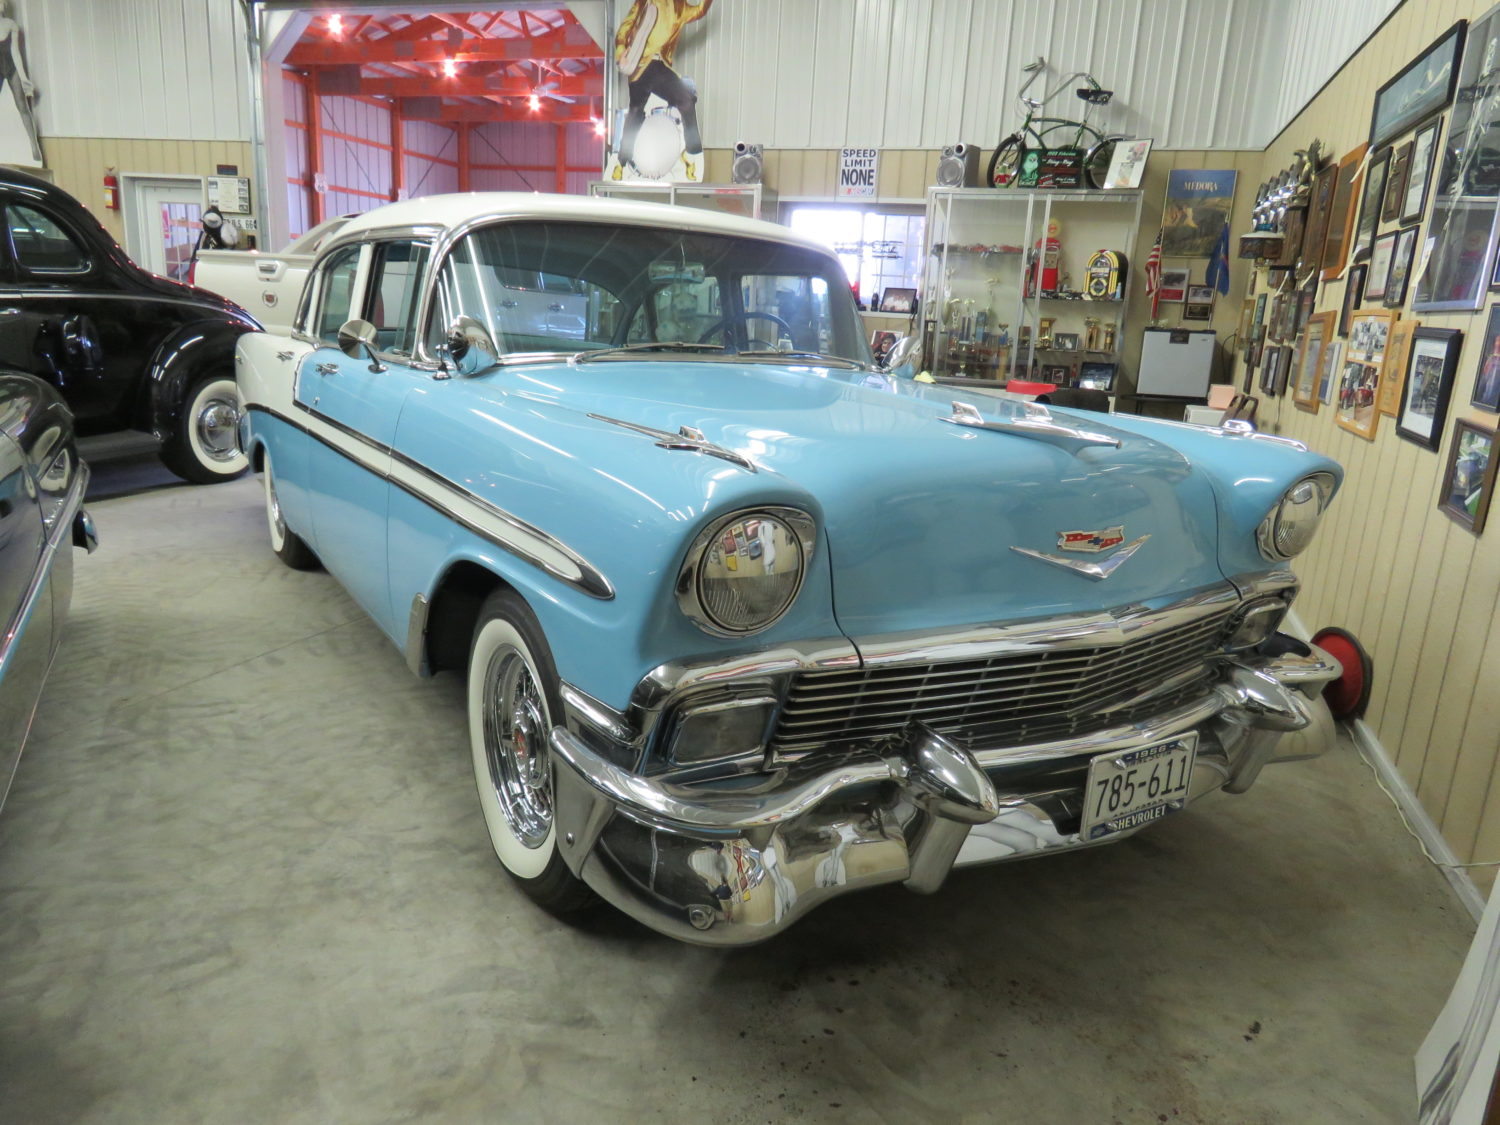 FABULOUS COLLECTOR CARS, MEMORABILIA, & MORE AT AUCTION-JERRY JOHNSON ESTATE! - image 7